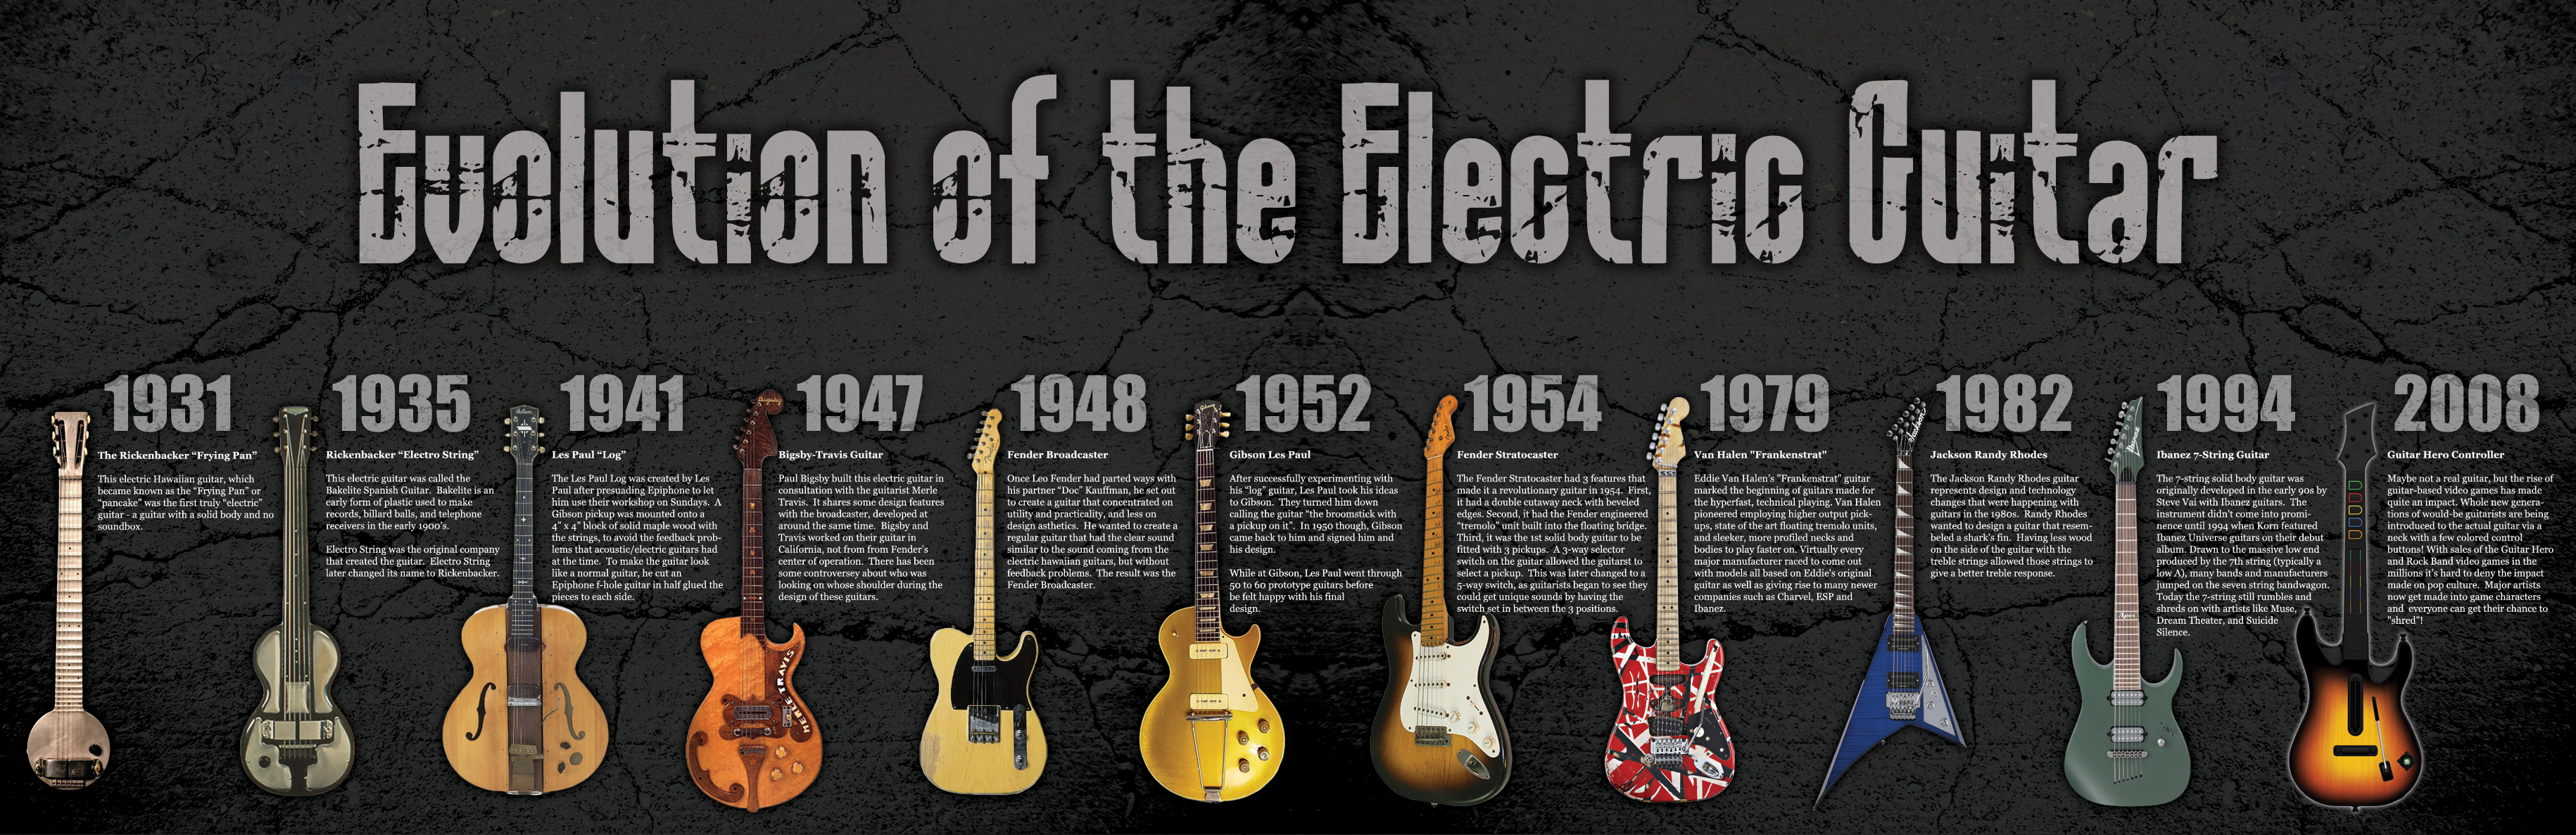 evolution-of-the-electric-guitar